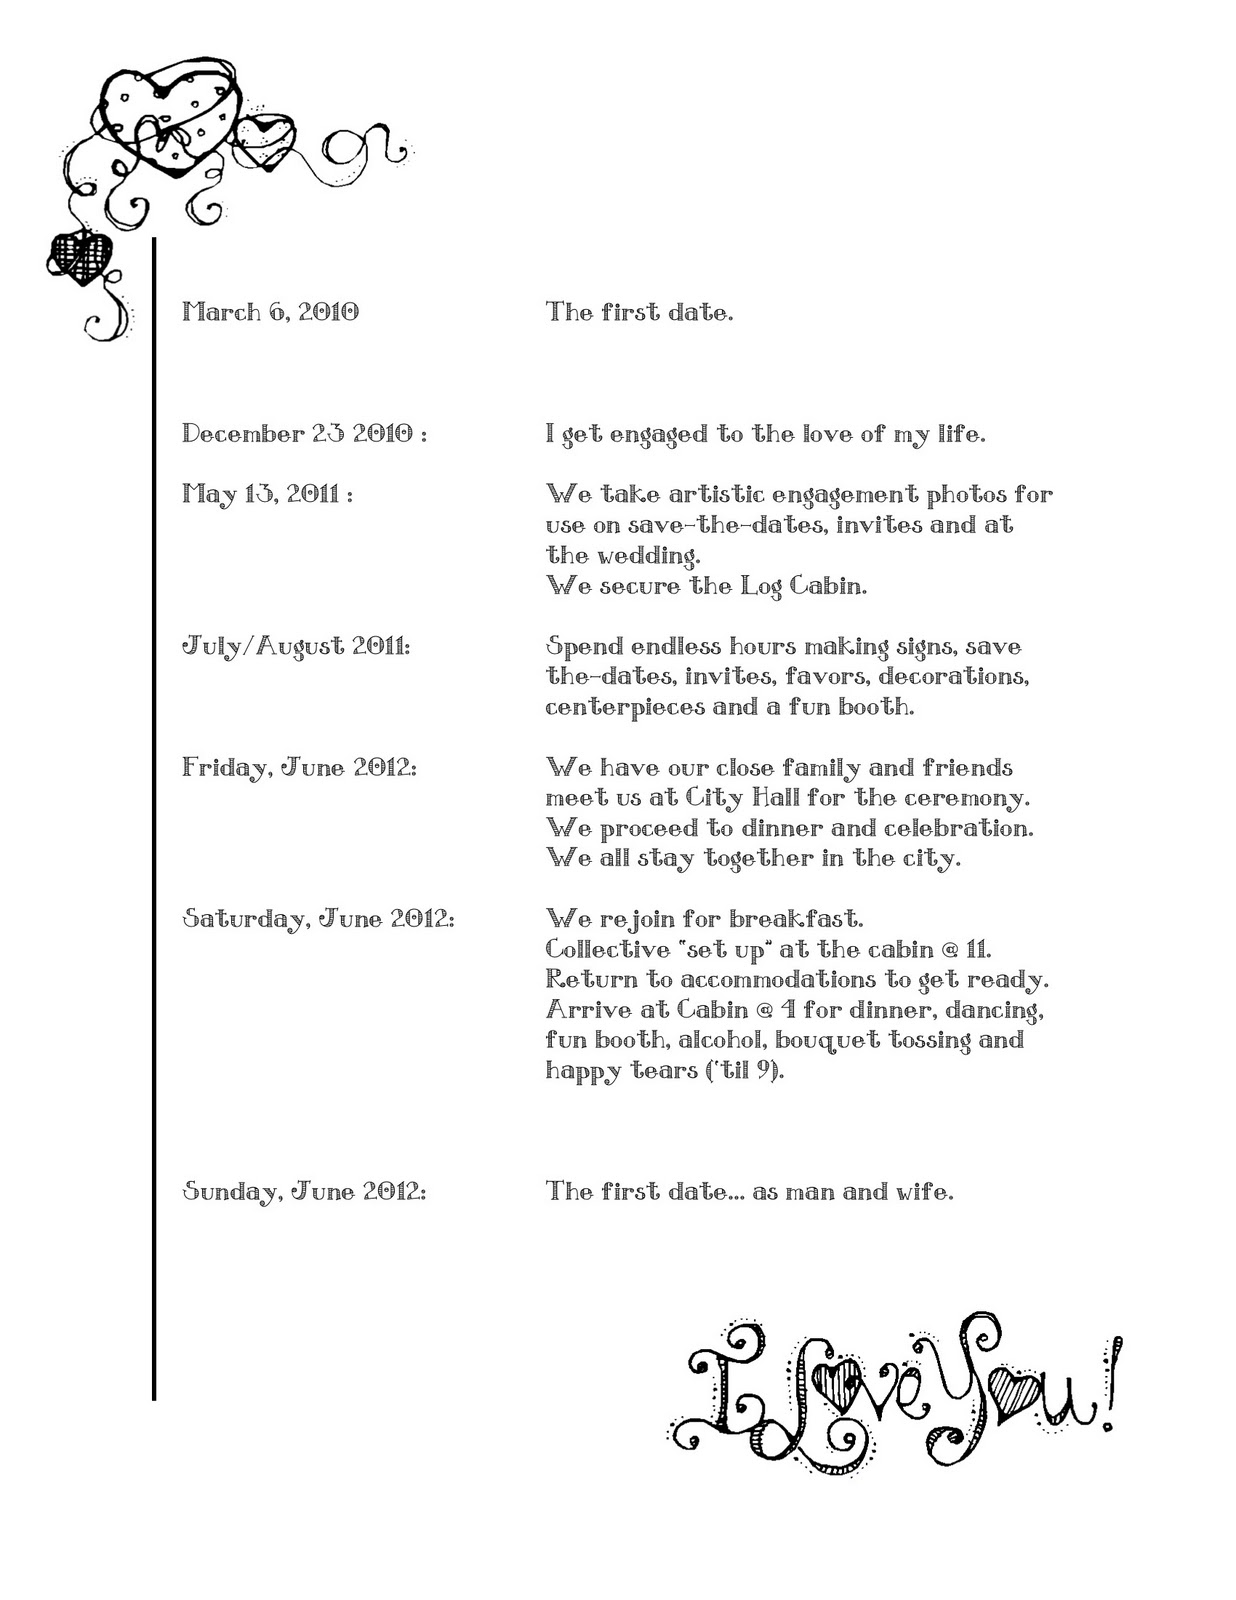 Order Of Events For A Wedding Invitationjpg